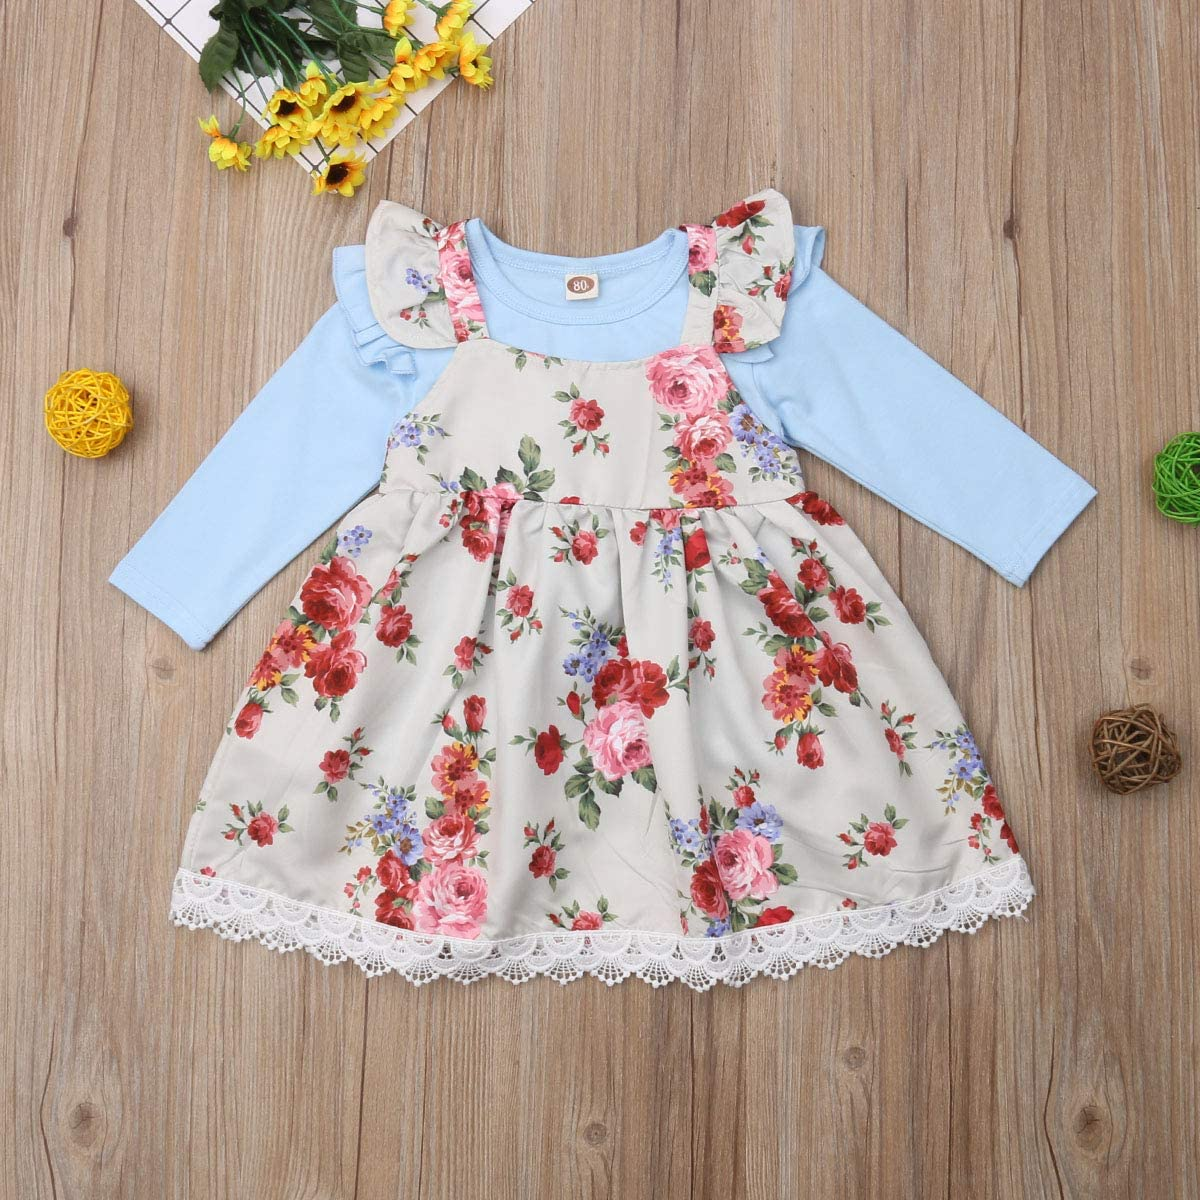 Toddler Baby Girl Kids Fall Plain T Shirts Floral Overall Dress Set 2 Pcs Outfit